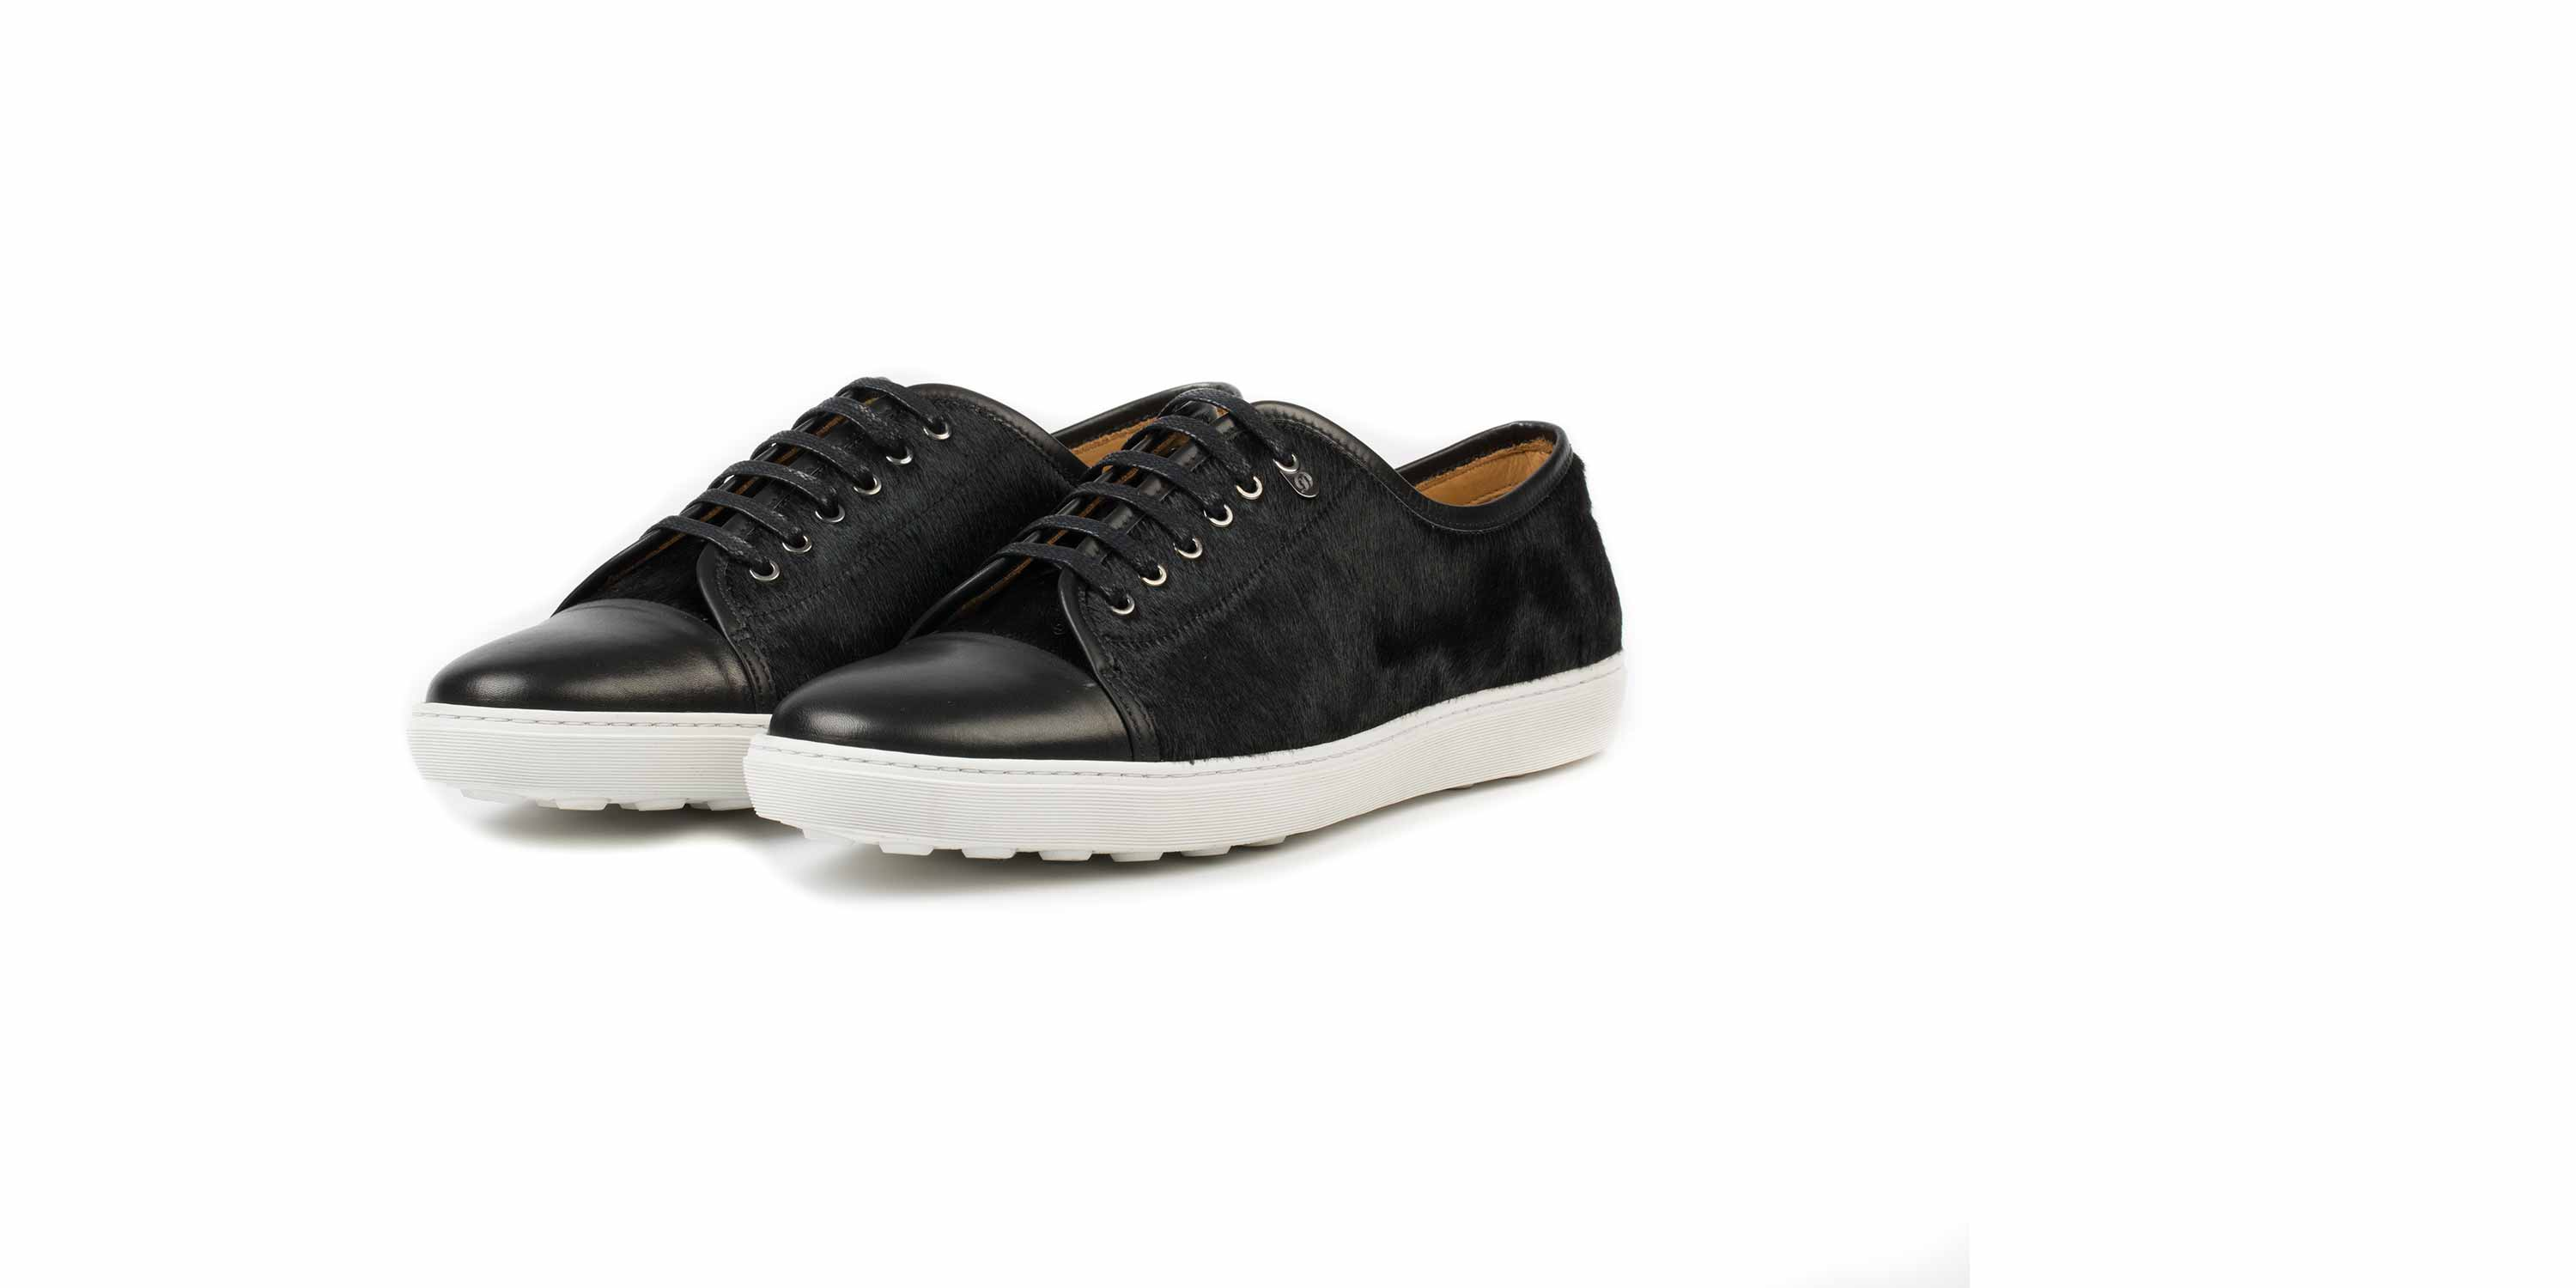 01_Redchurch-Sneaker_Black